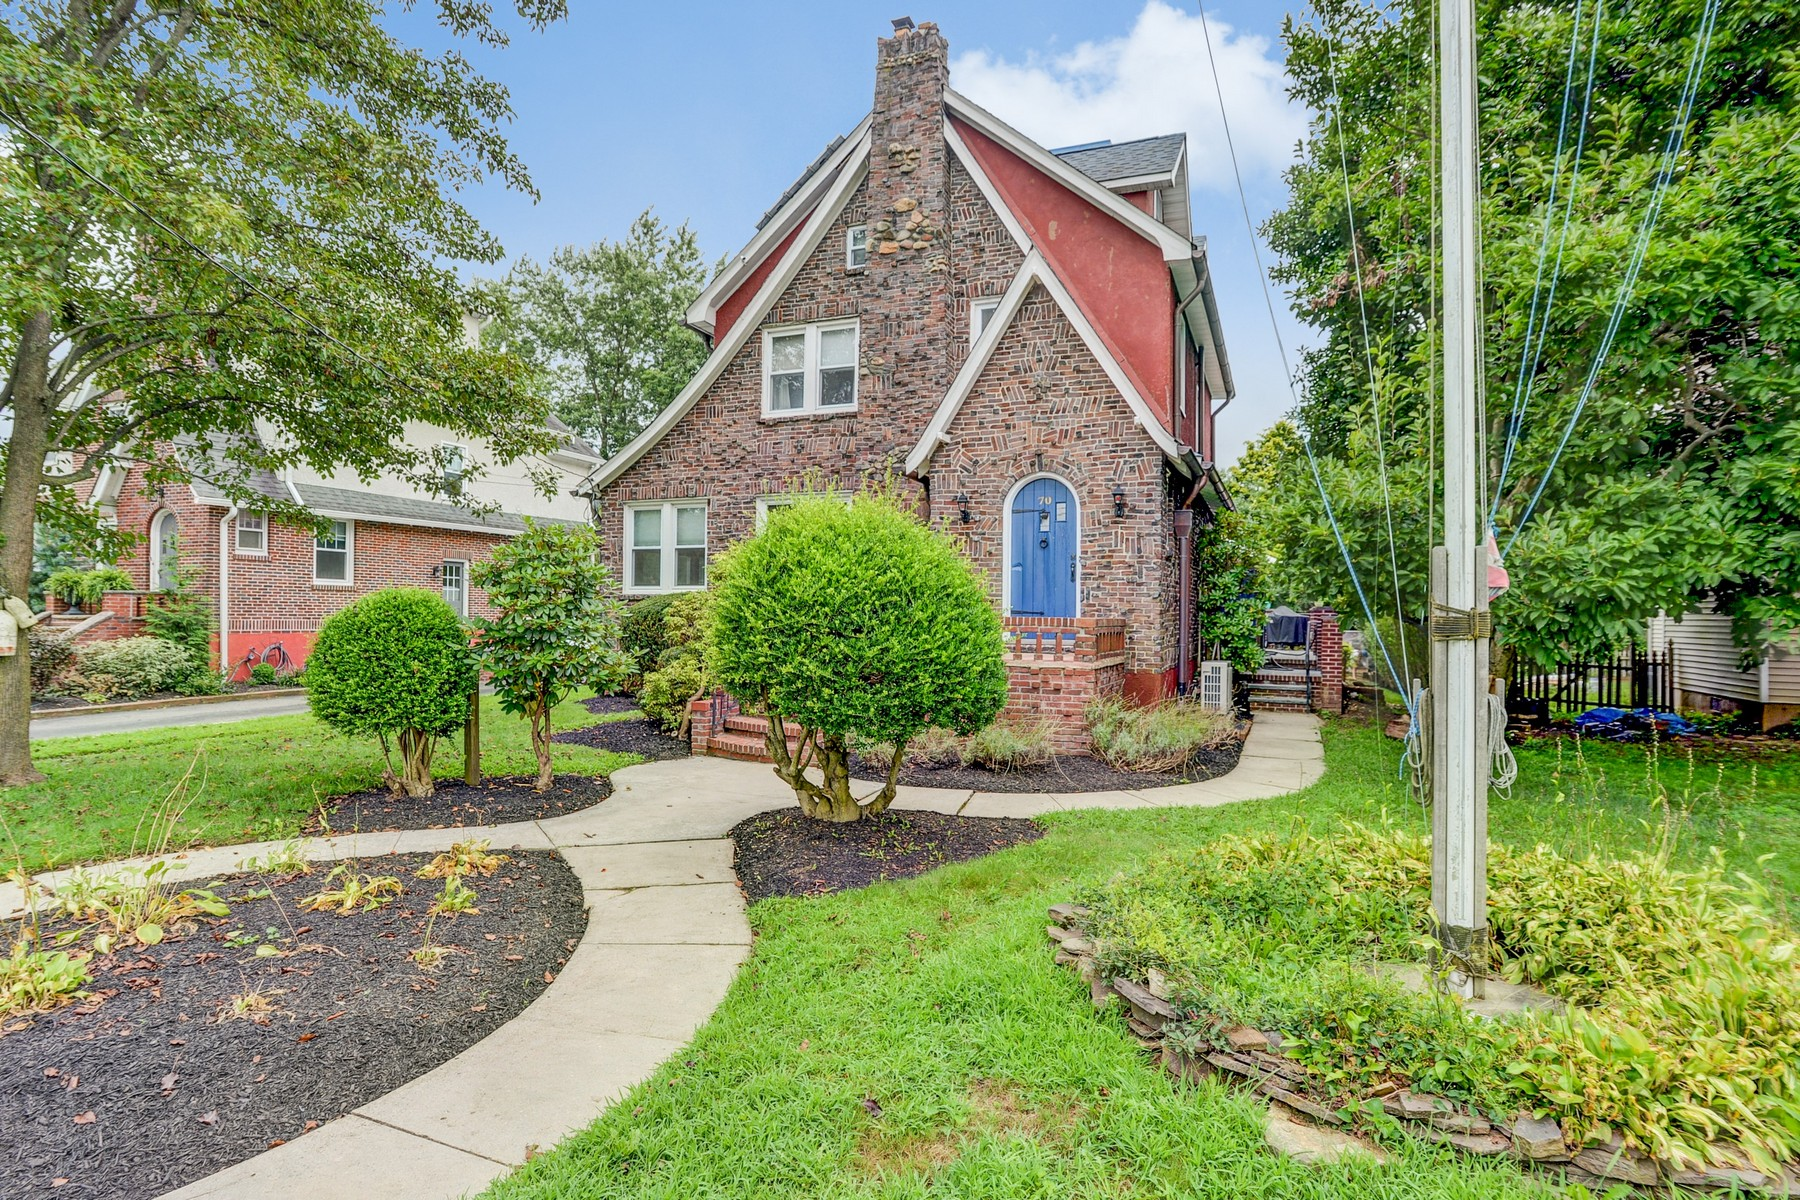 Single Family Homes for Active at Charming Move-in Ready Home 70 Roosevelt Circle E Red Bank, New Jersey 07701 United States